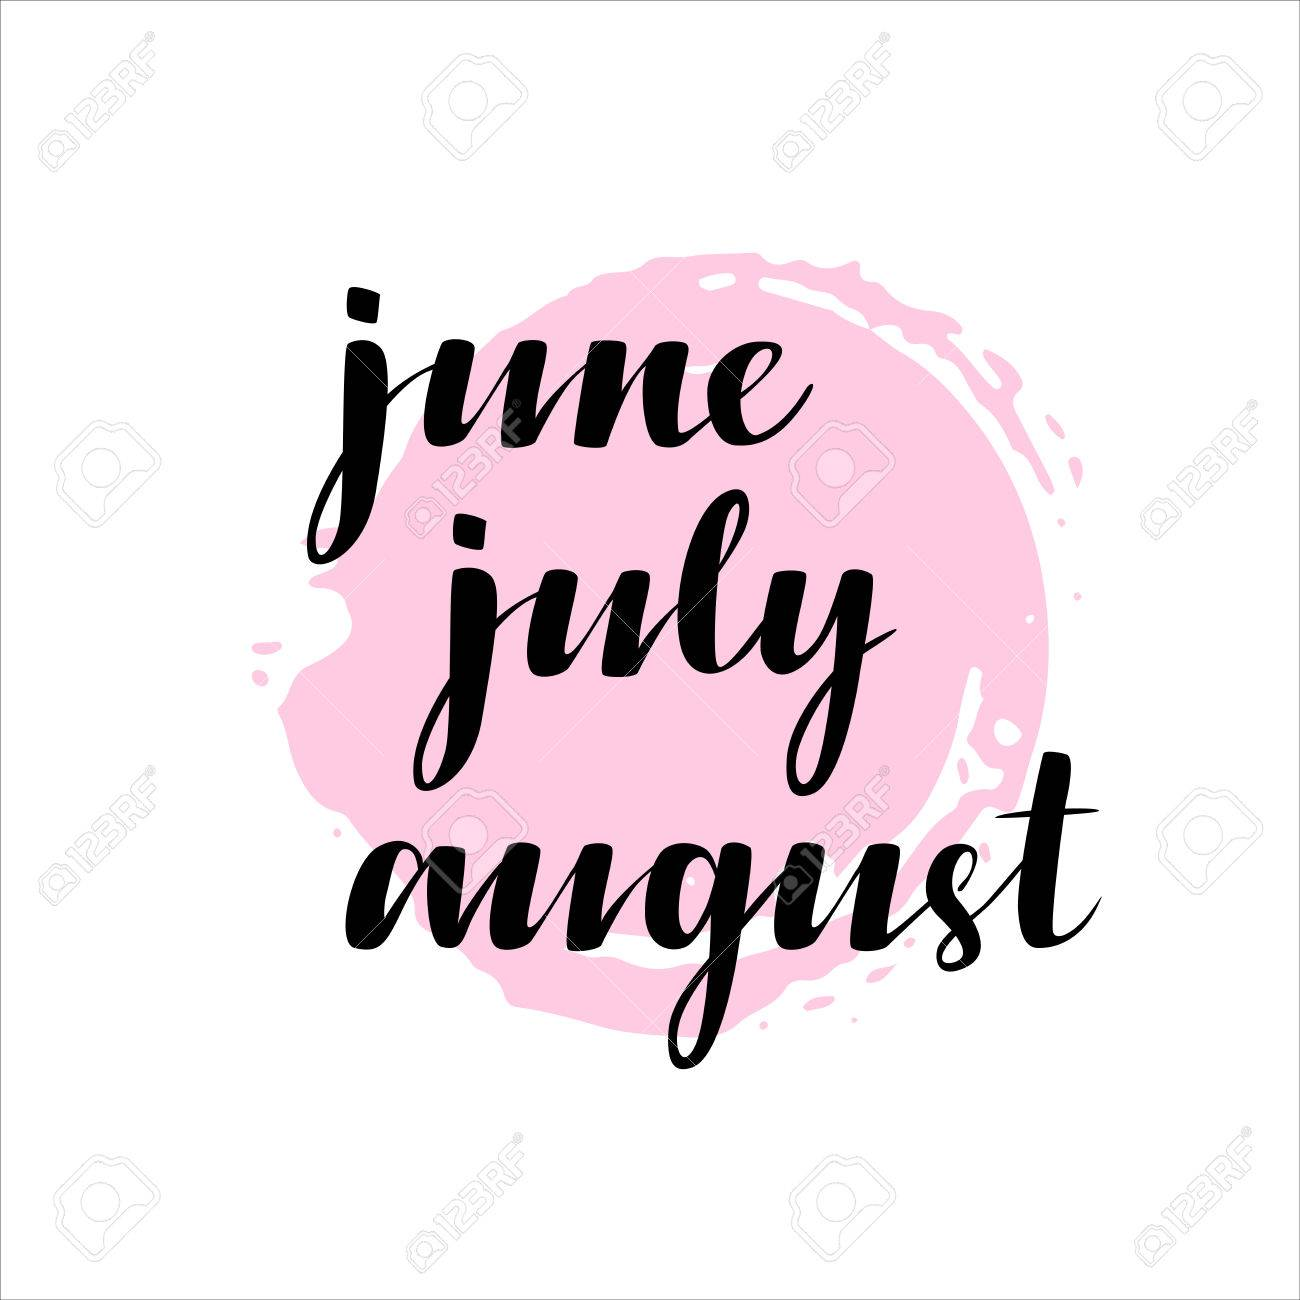 Names Of Months June July August Igraphy Words For Calendars And Organizers